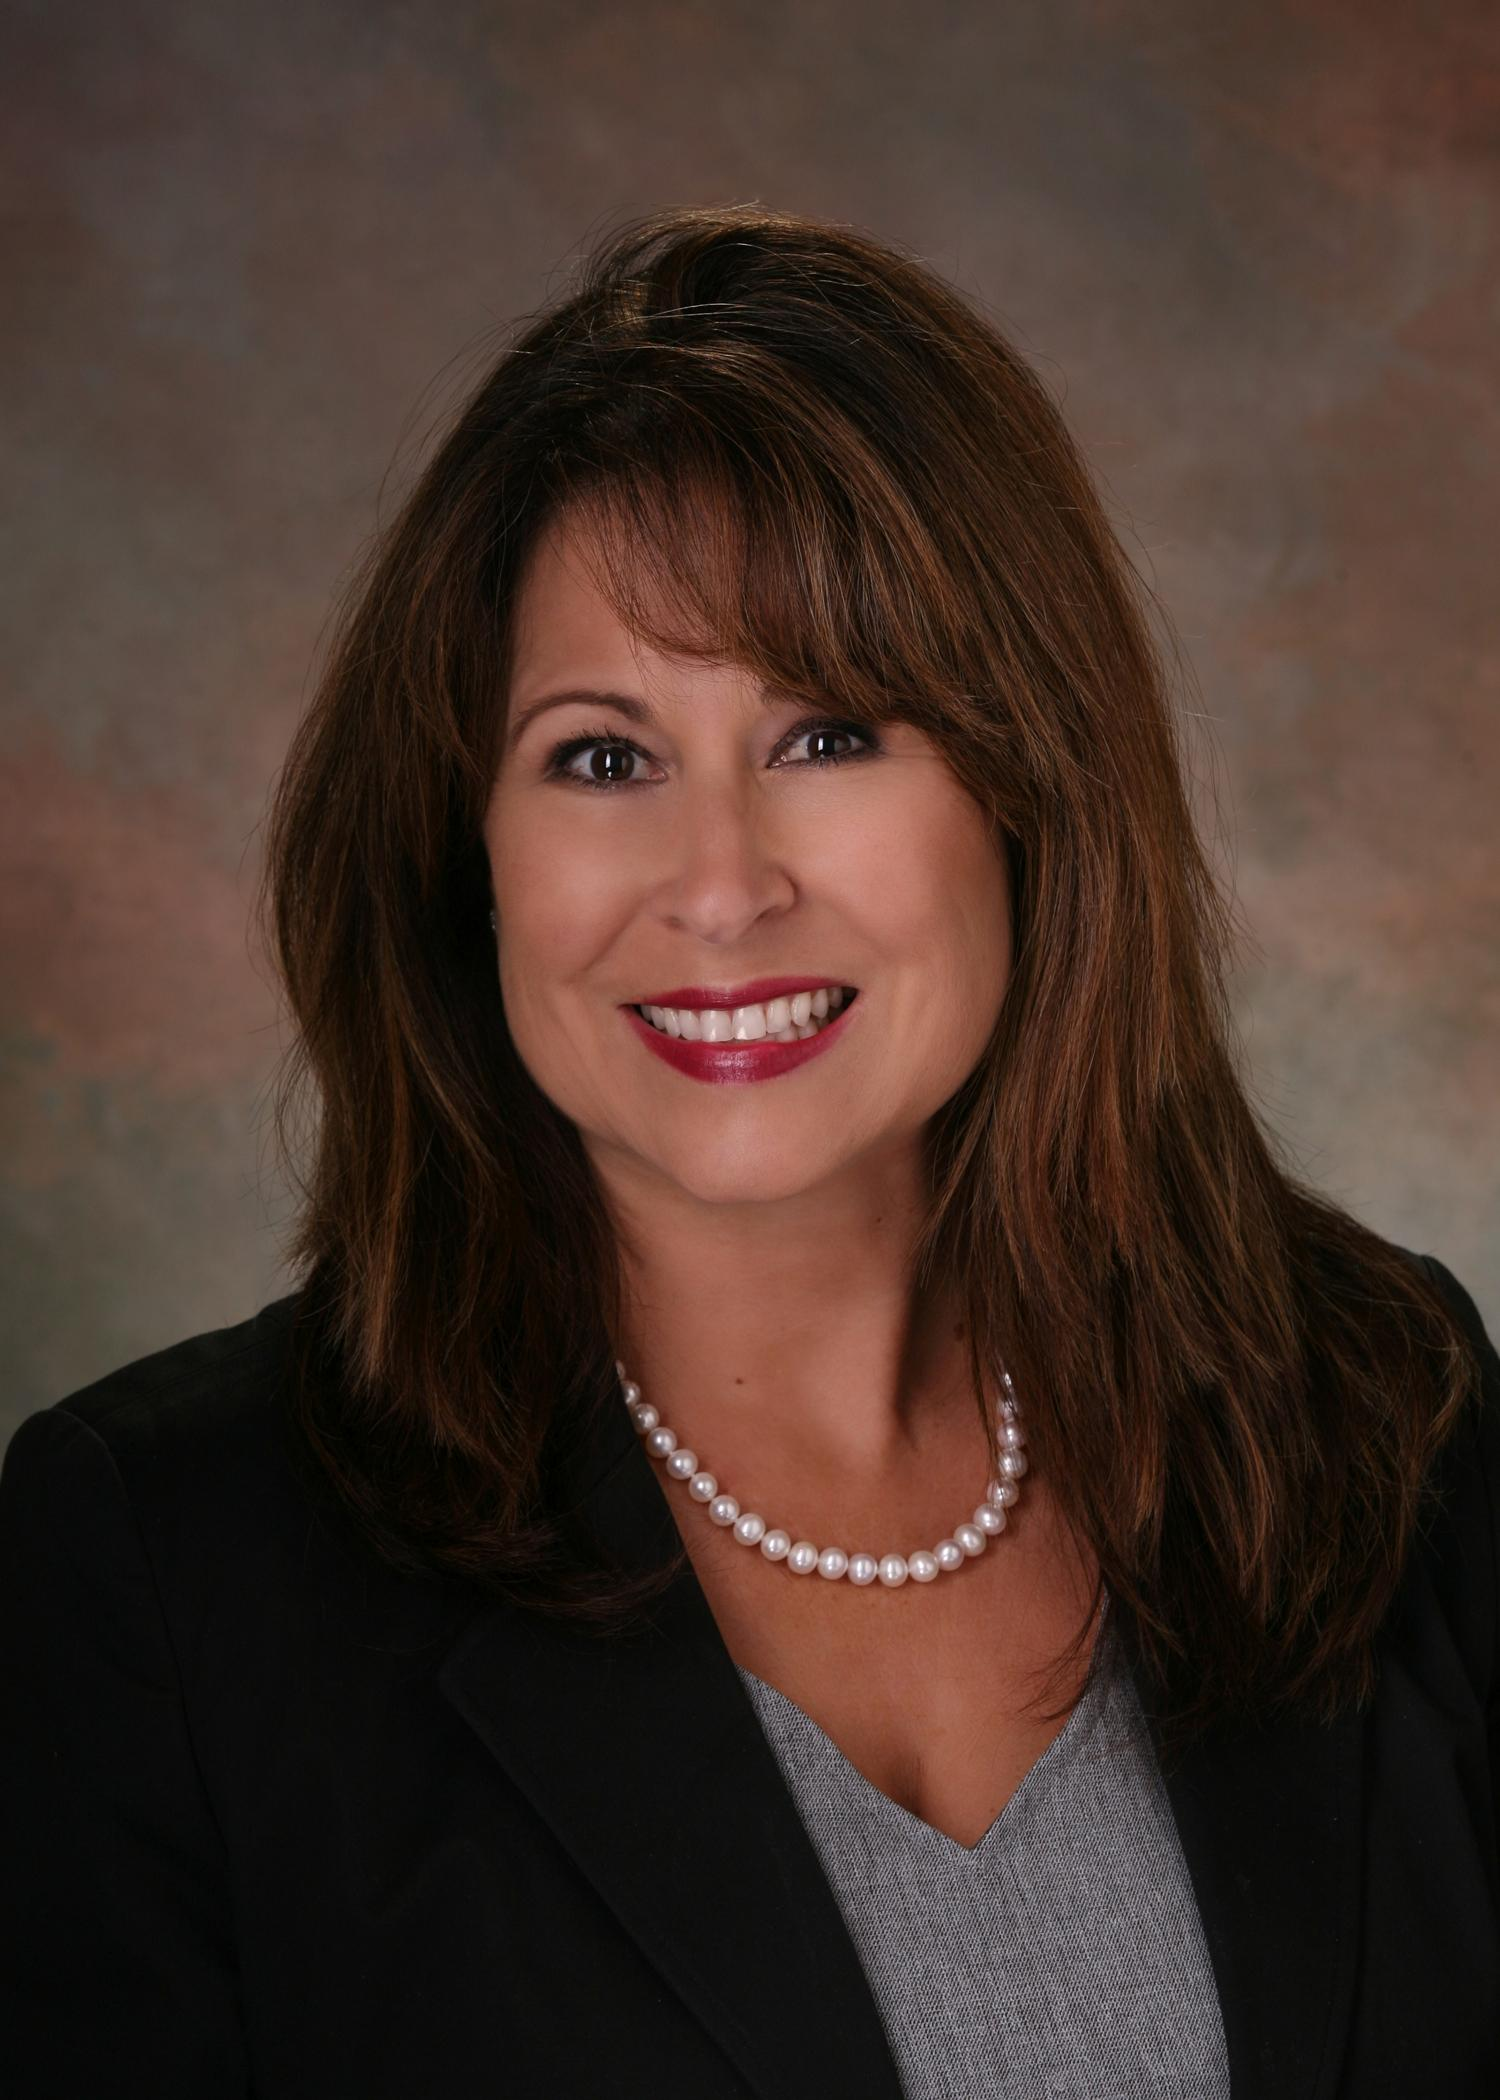 KRISTI N. HEBERT Financial Professional & Insurance Agent